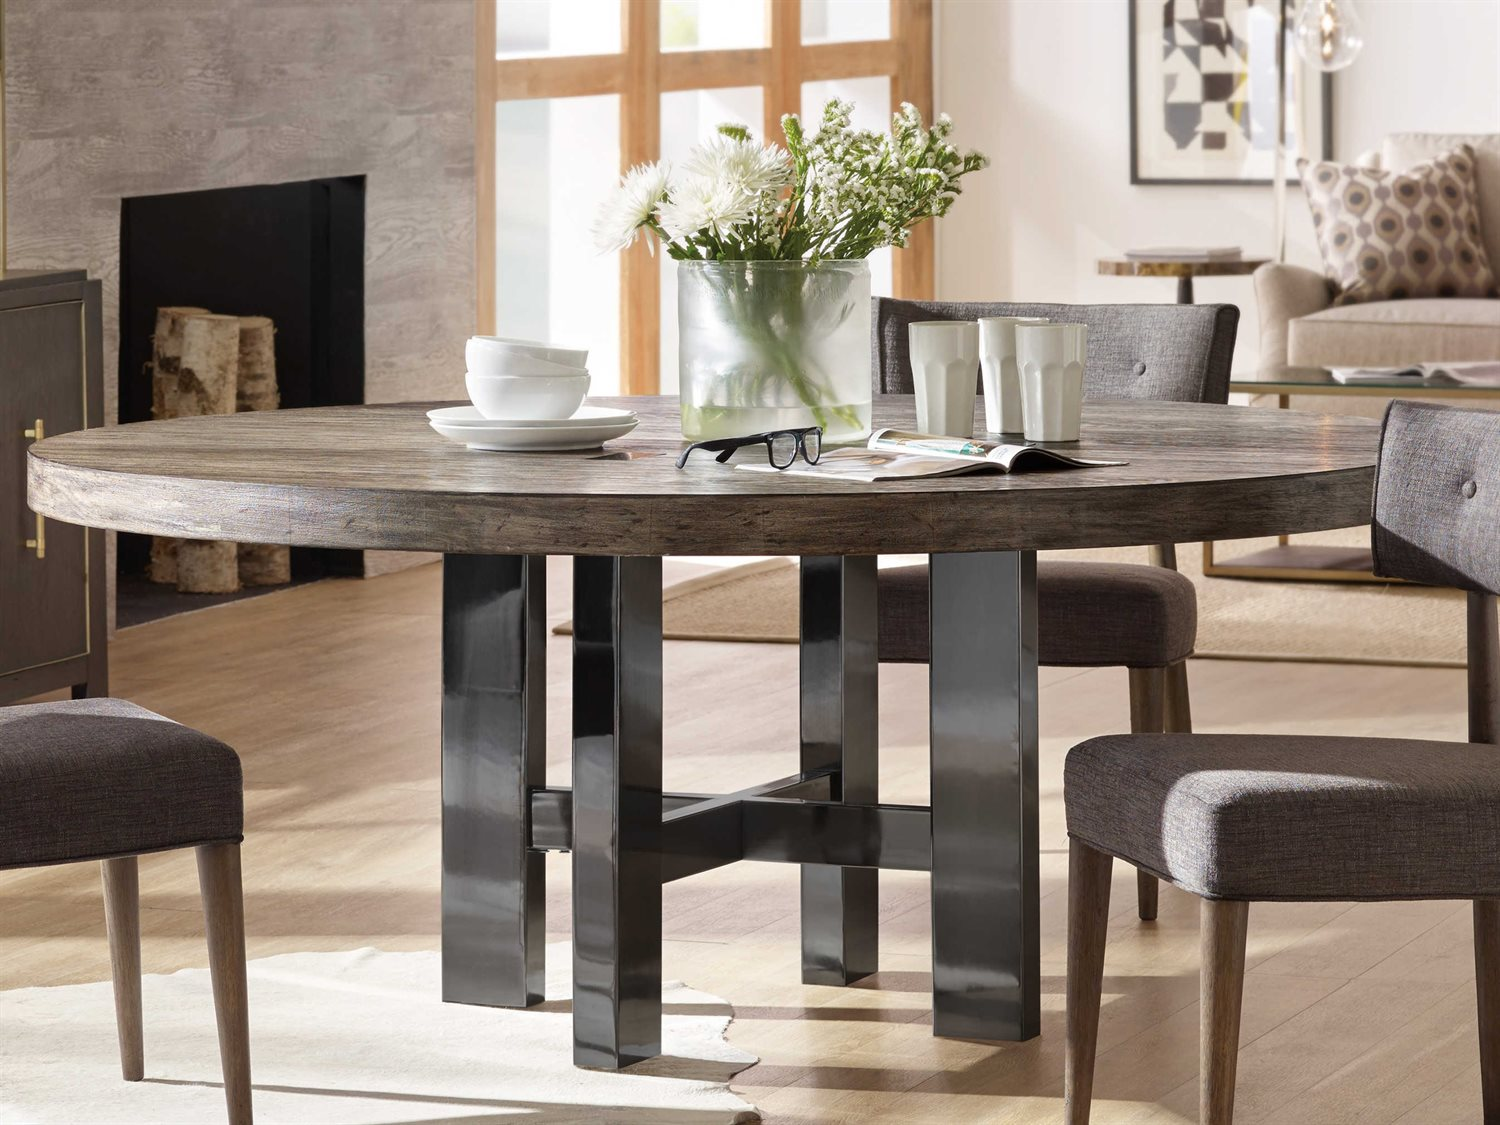 Furniture Curata Medium Greige With Black Nickel 72 Wide Round Dining Table